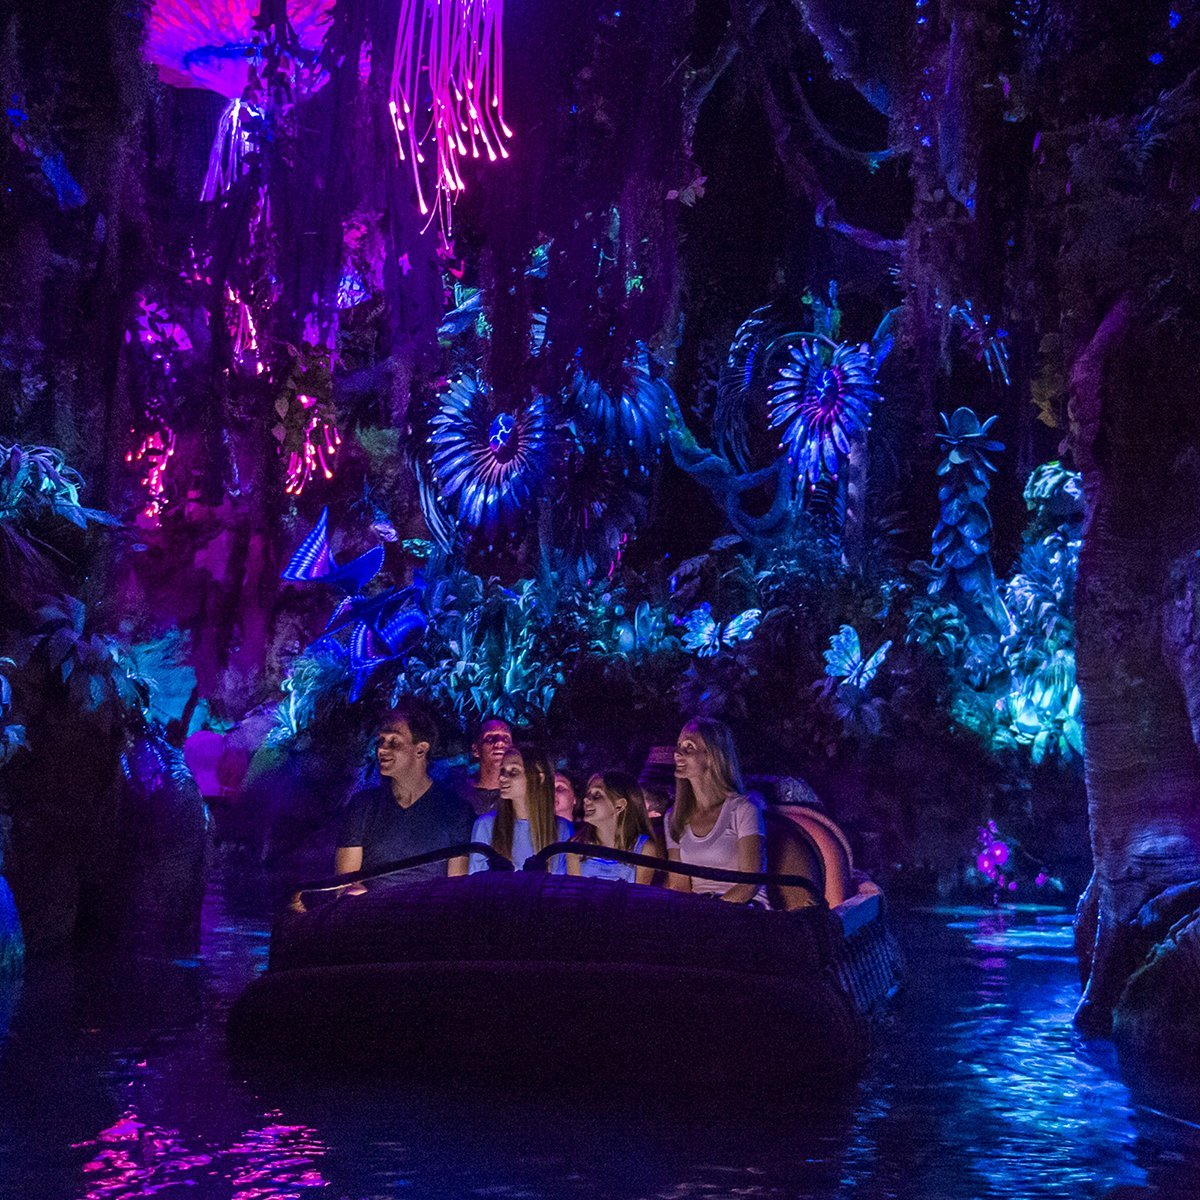 Slide 18 of 19: A new attraction based on James Cameron's Avatar film was introduced at Disney's Animal Kingdom in May 2017. The Na'vi River Journey ride, seen here, takes guests through the enchanting world of Pandora.